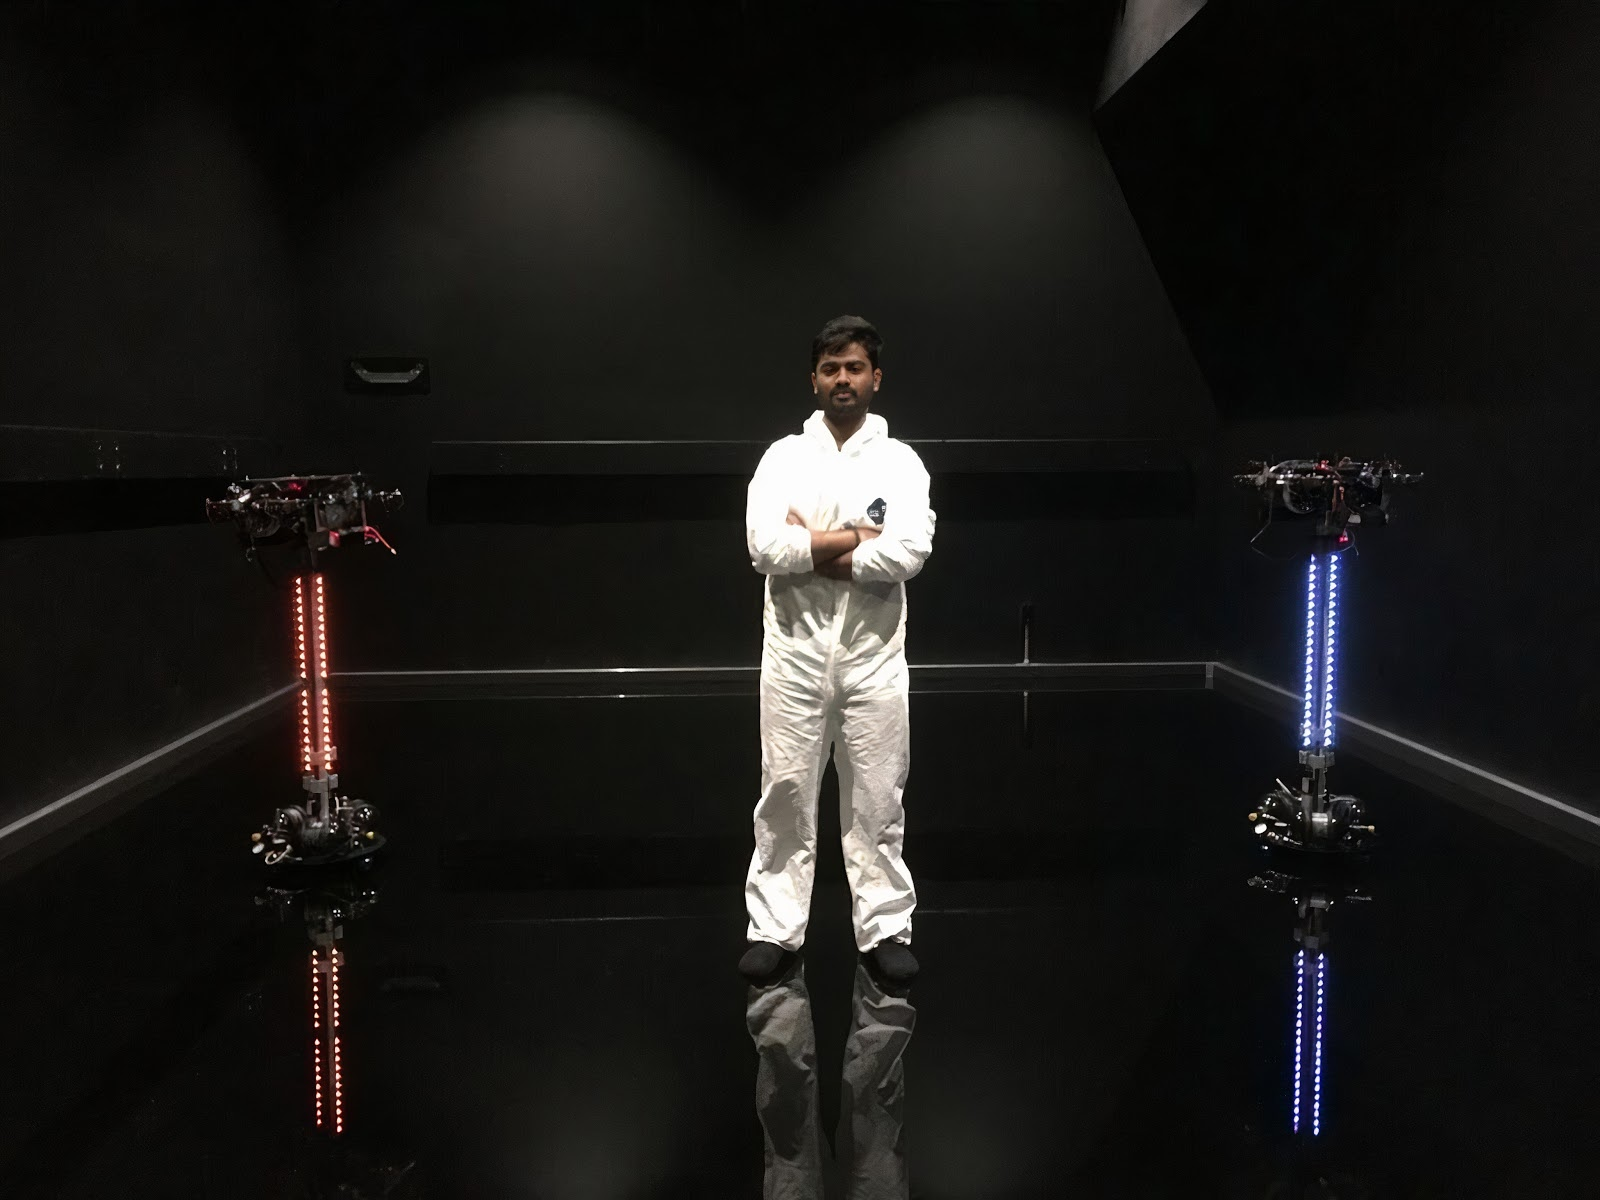 Yashwanth with the M-STAR (Multi-spacecraft Testbed for Autonomy Research) at the Aerospace Robotics and Controls Group at Caltech.